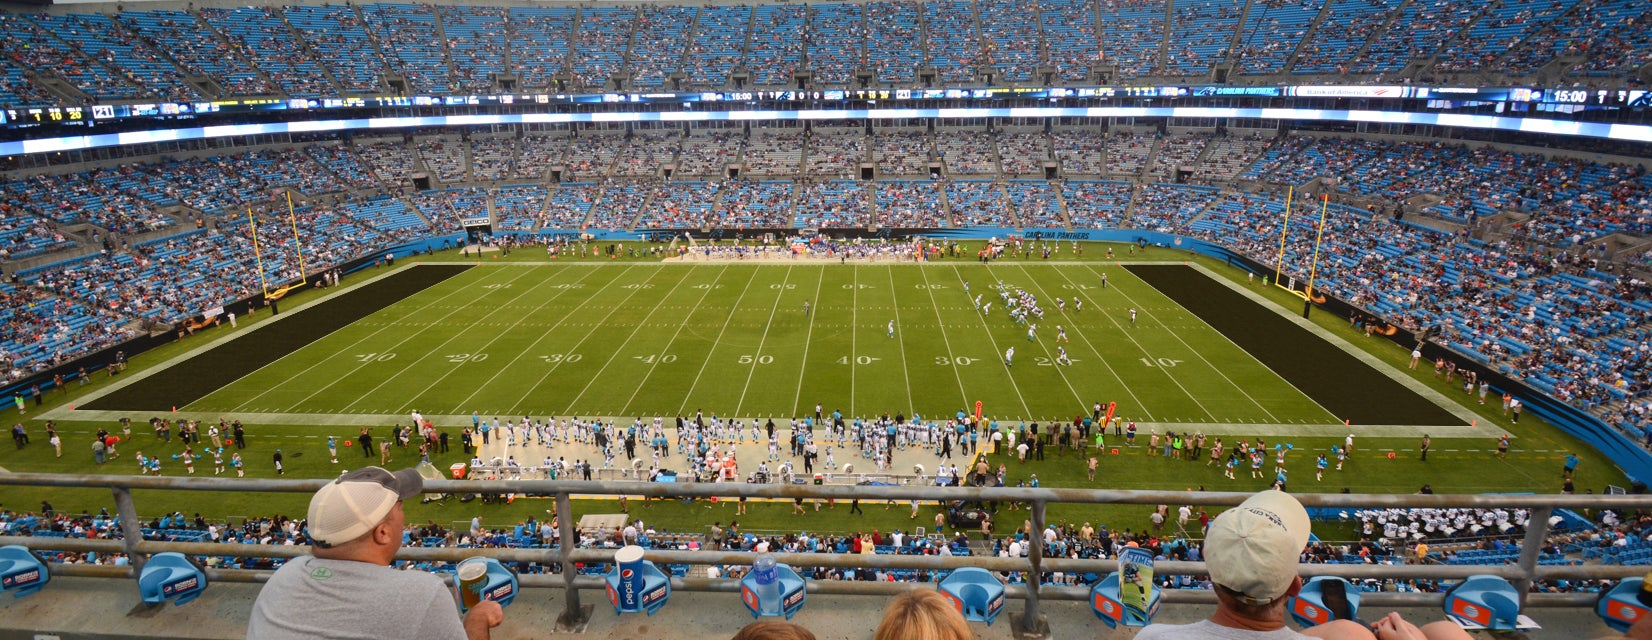 Seat view from Upper Premium